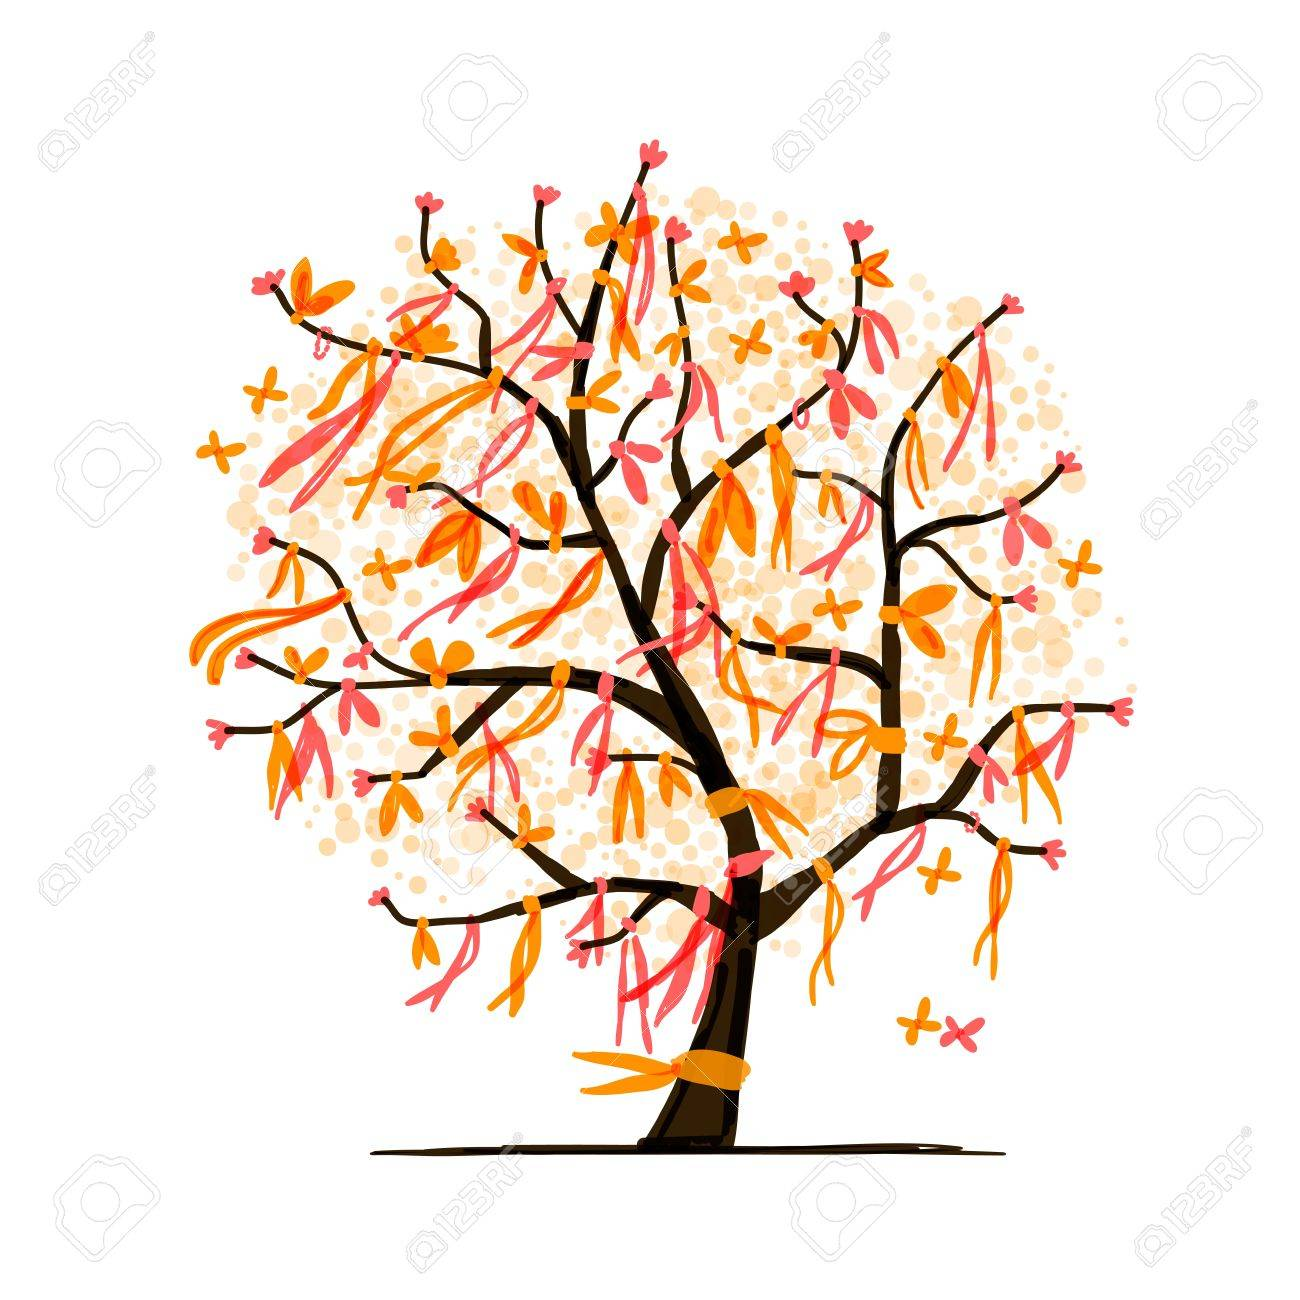 Abstract tree with ribbons for your design Stock Vector - 16125645